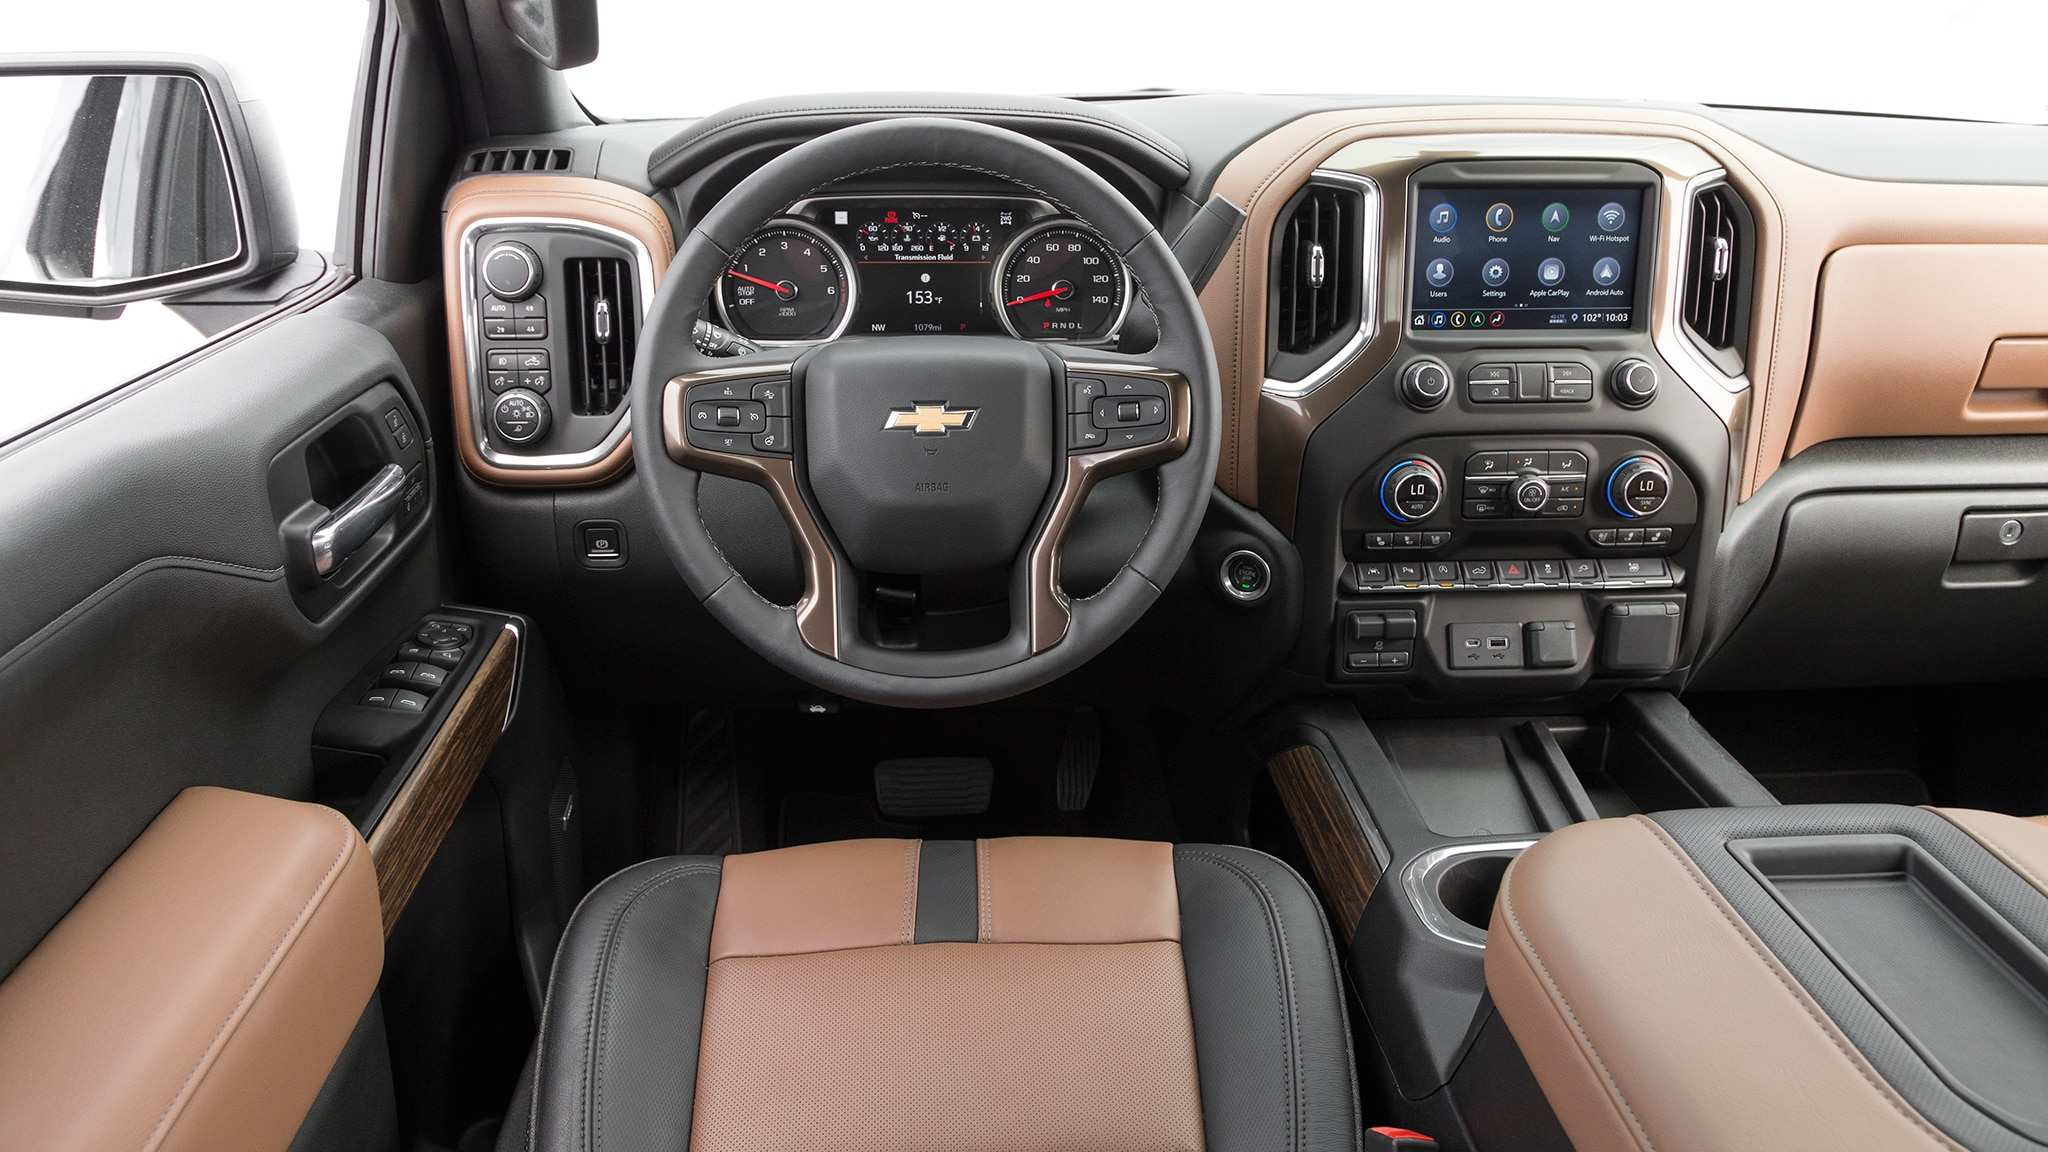 62 New 2019 Chevrolet High Country Interior Redesign